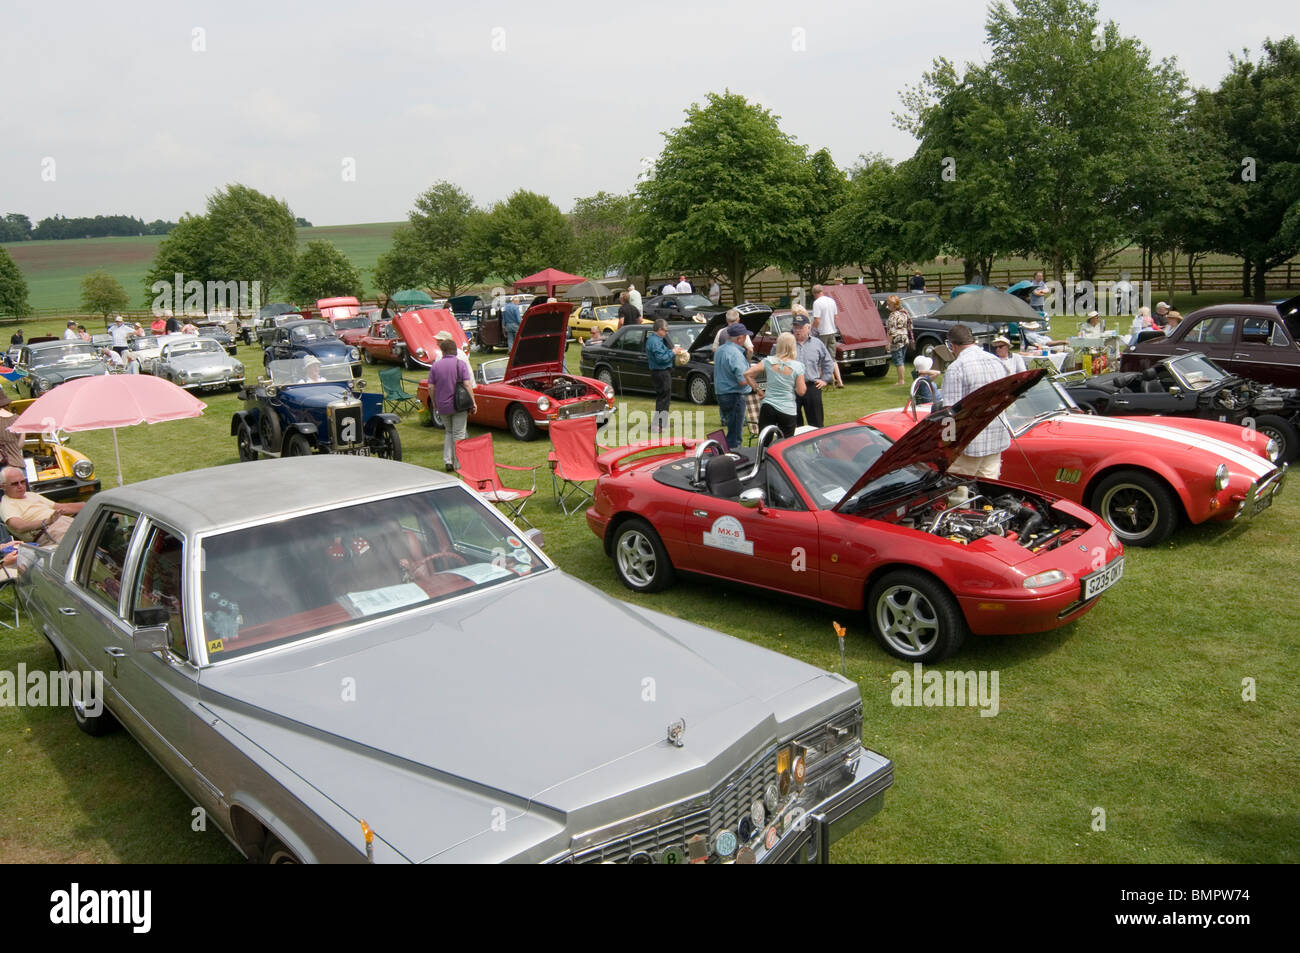 car show cars shows showing classic classic old restored well ...